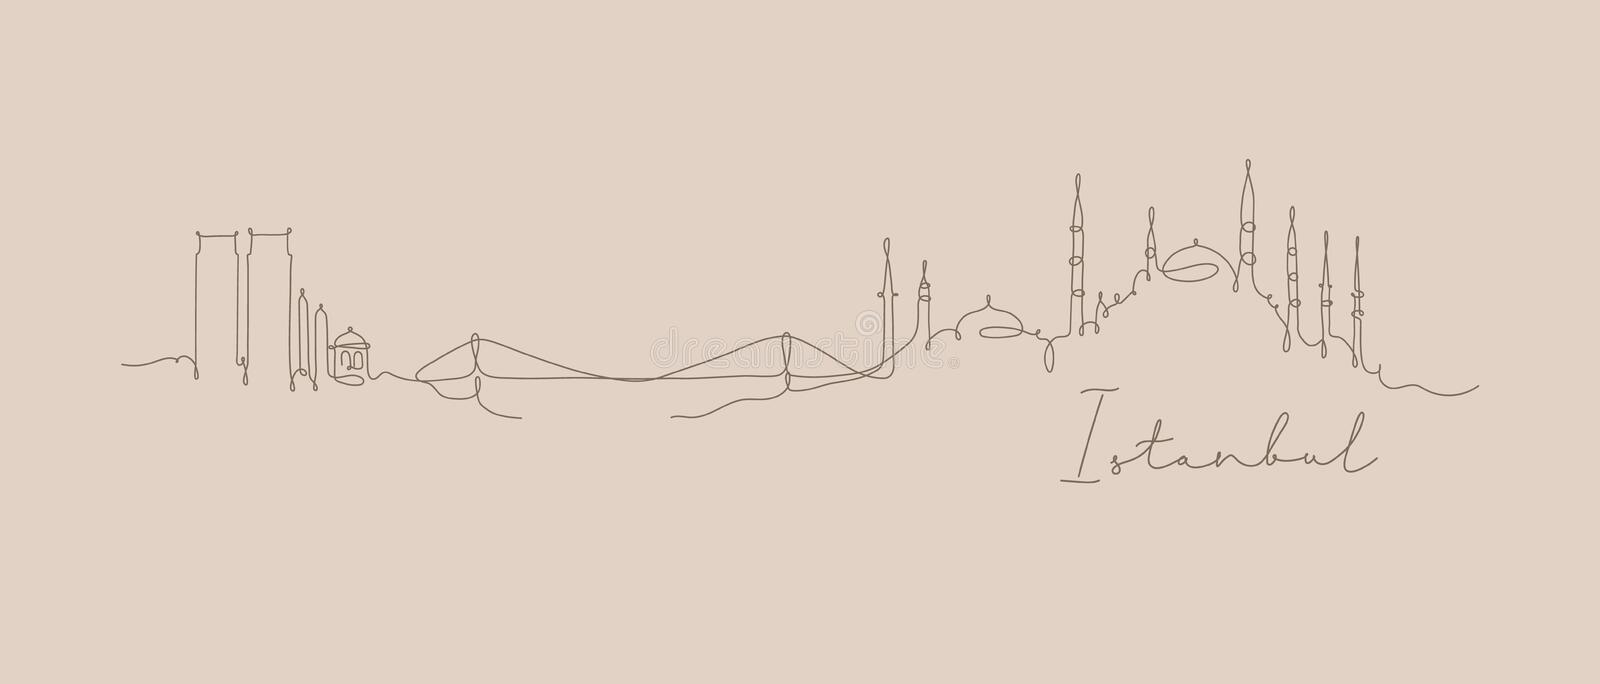 Pen line silhouette Istanbul beige. City silhouette Istanbul in pen line style drawing with brown lines on beige background stock illustration